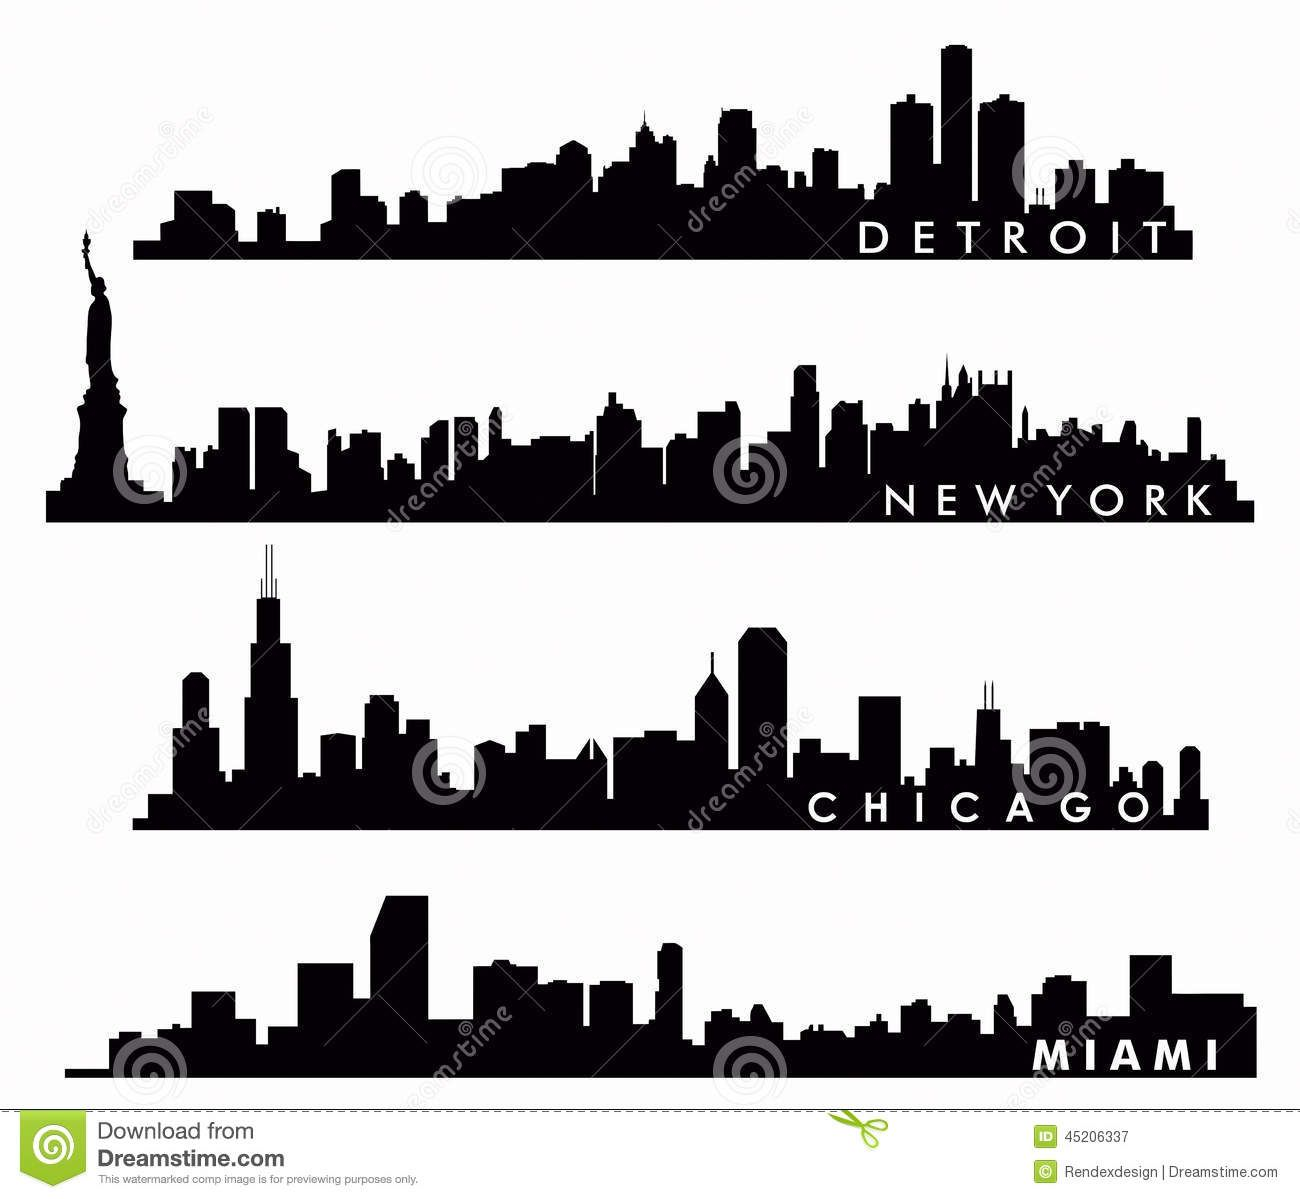 Free hd vector images of detroit skyline clipart vector freeuse download New York Skyline, Chicago Skyline, Miami Skyline, Detroit Skyline ... vector freeuse download